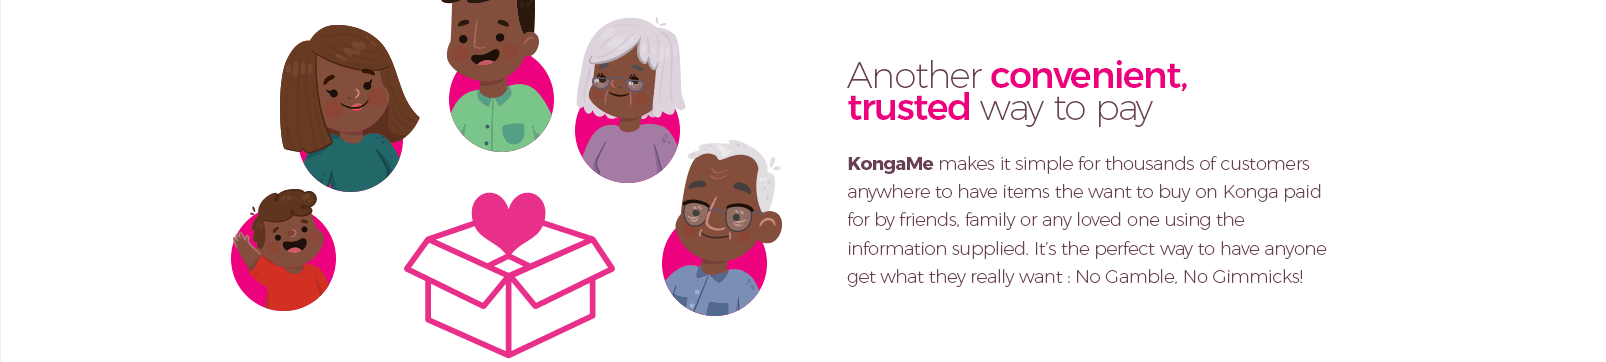 https://www-konga-com-res.cloudinary.com/image/upload/v1548863781/landingPages/kongaMe/feature/01_kongaMe.png